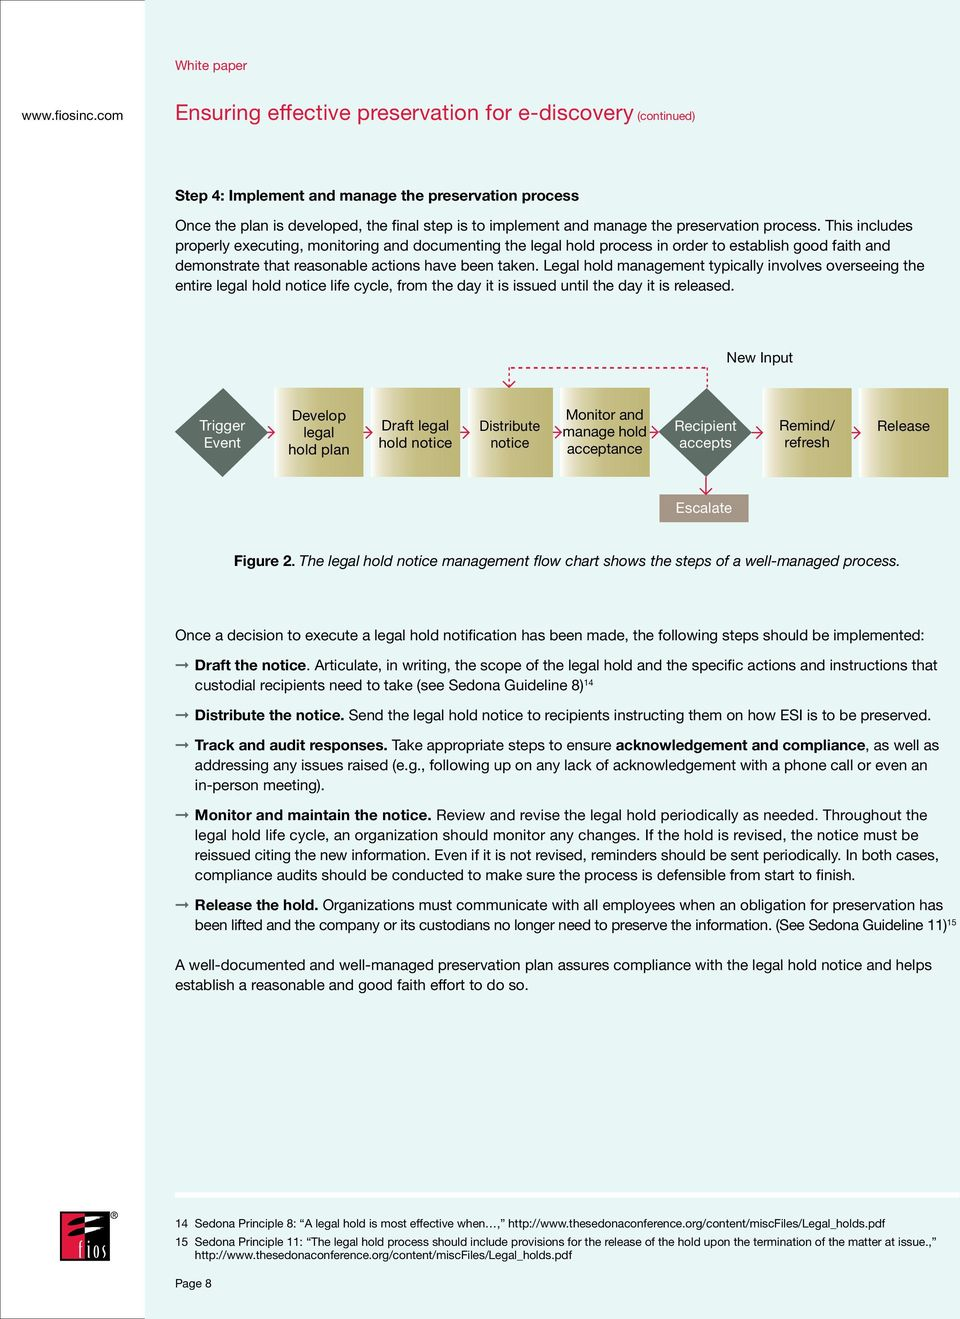 medium resolution of legal hold management typically involves overseeing the entire legal hold notice life cycle from the